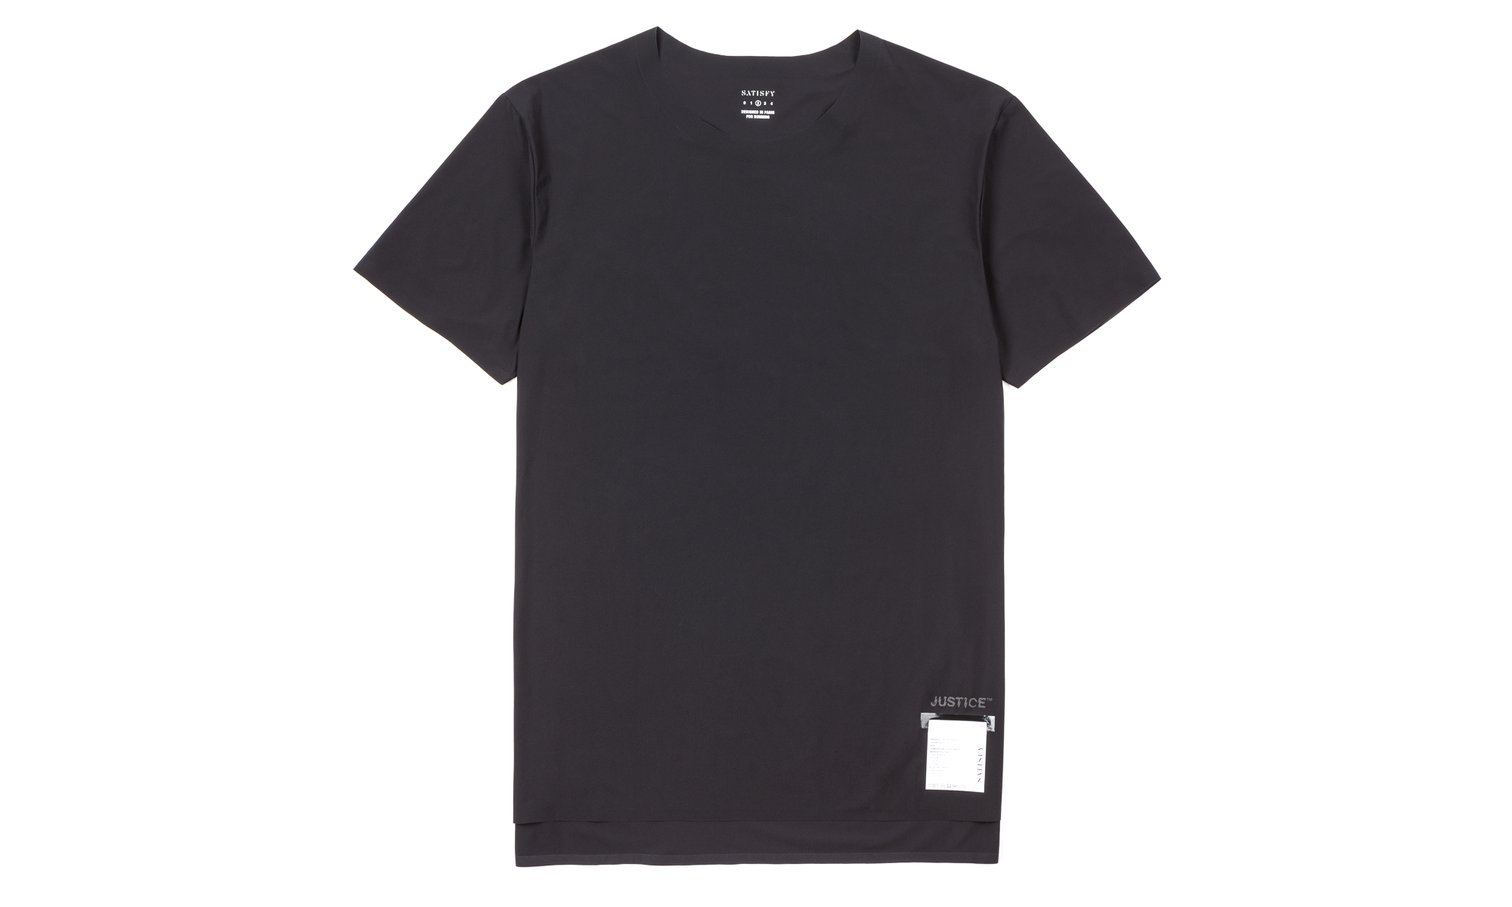 Satisfy Running - Bonded hems, clean cut neck, 4-way stretch and sweat wicking = ultimate life tee